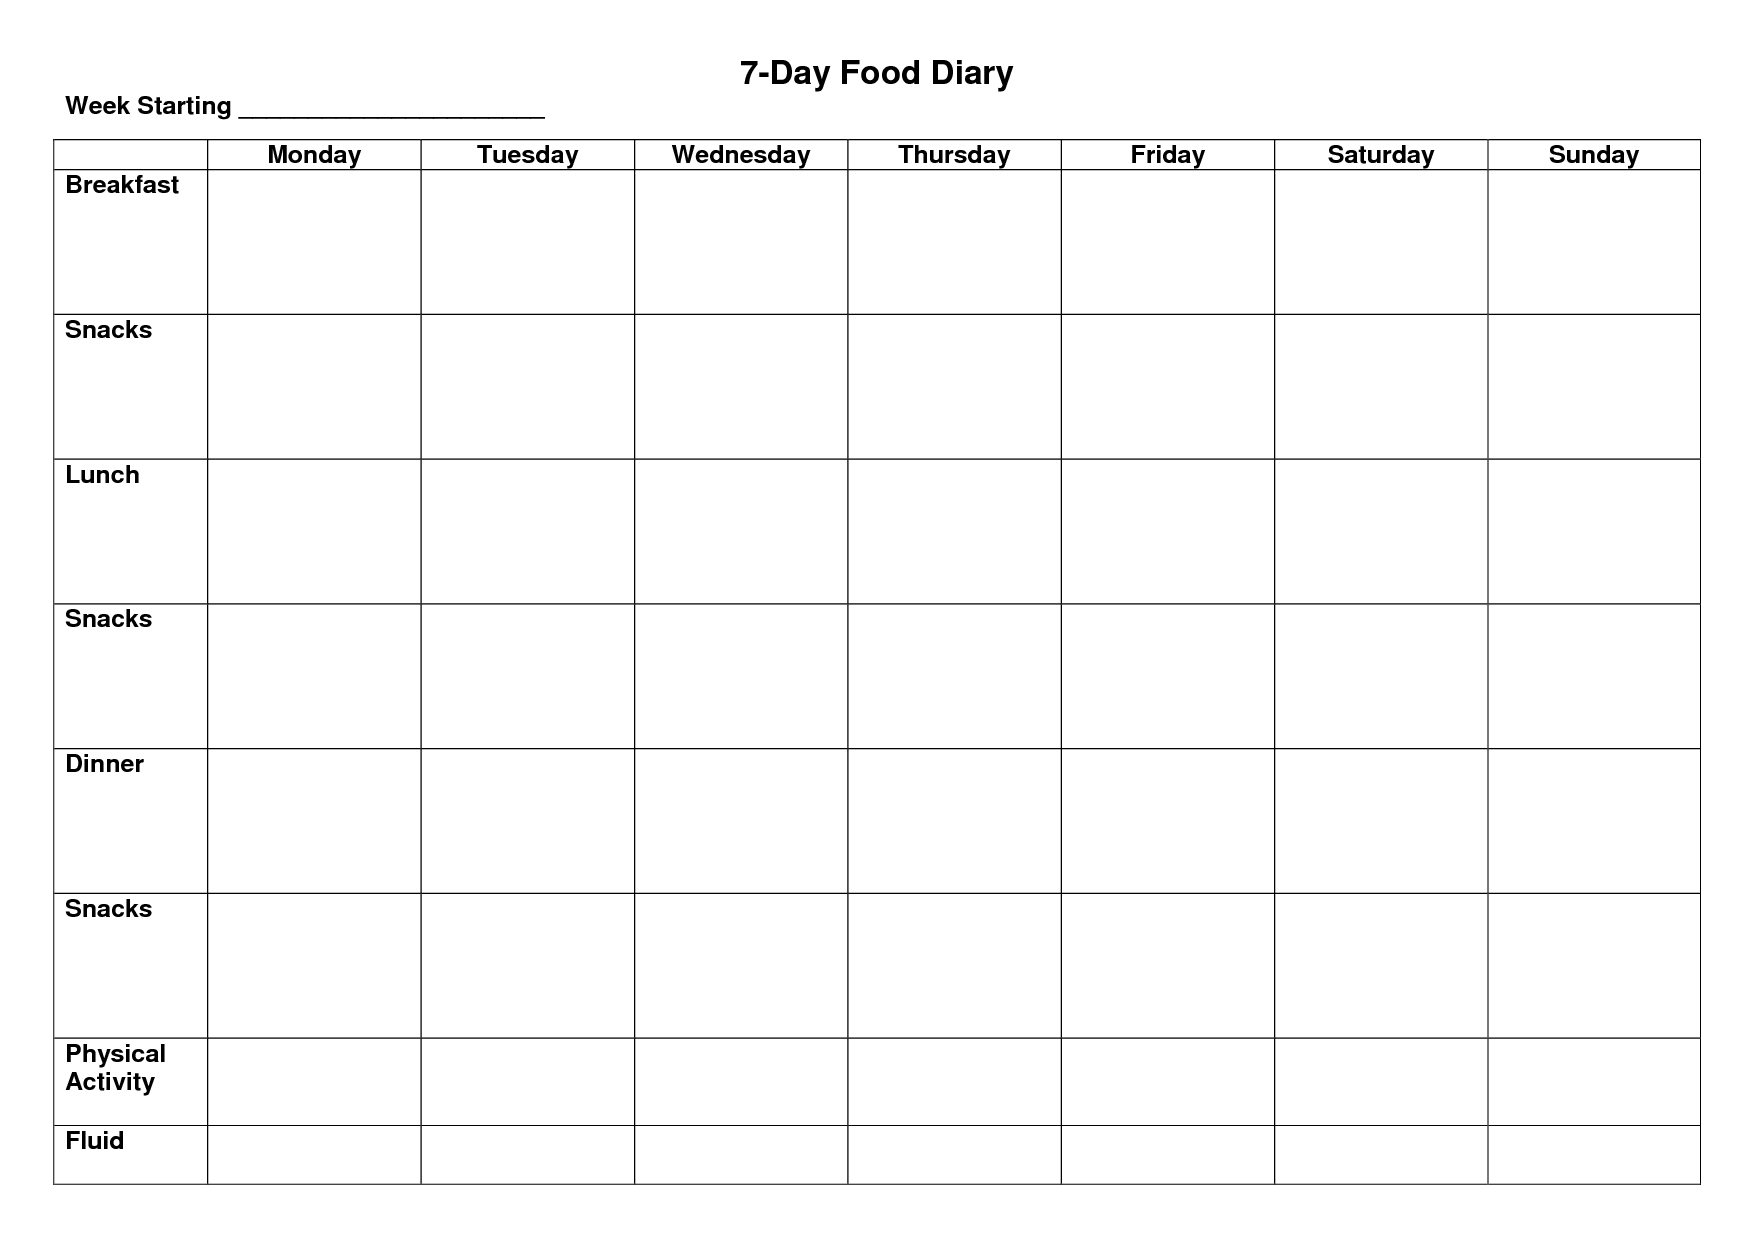 Day Food Diary Template  Diet Plans In   Food Diary Diary Pertaining To 7 Day Menu Planner Template